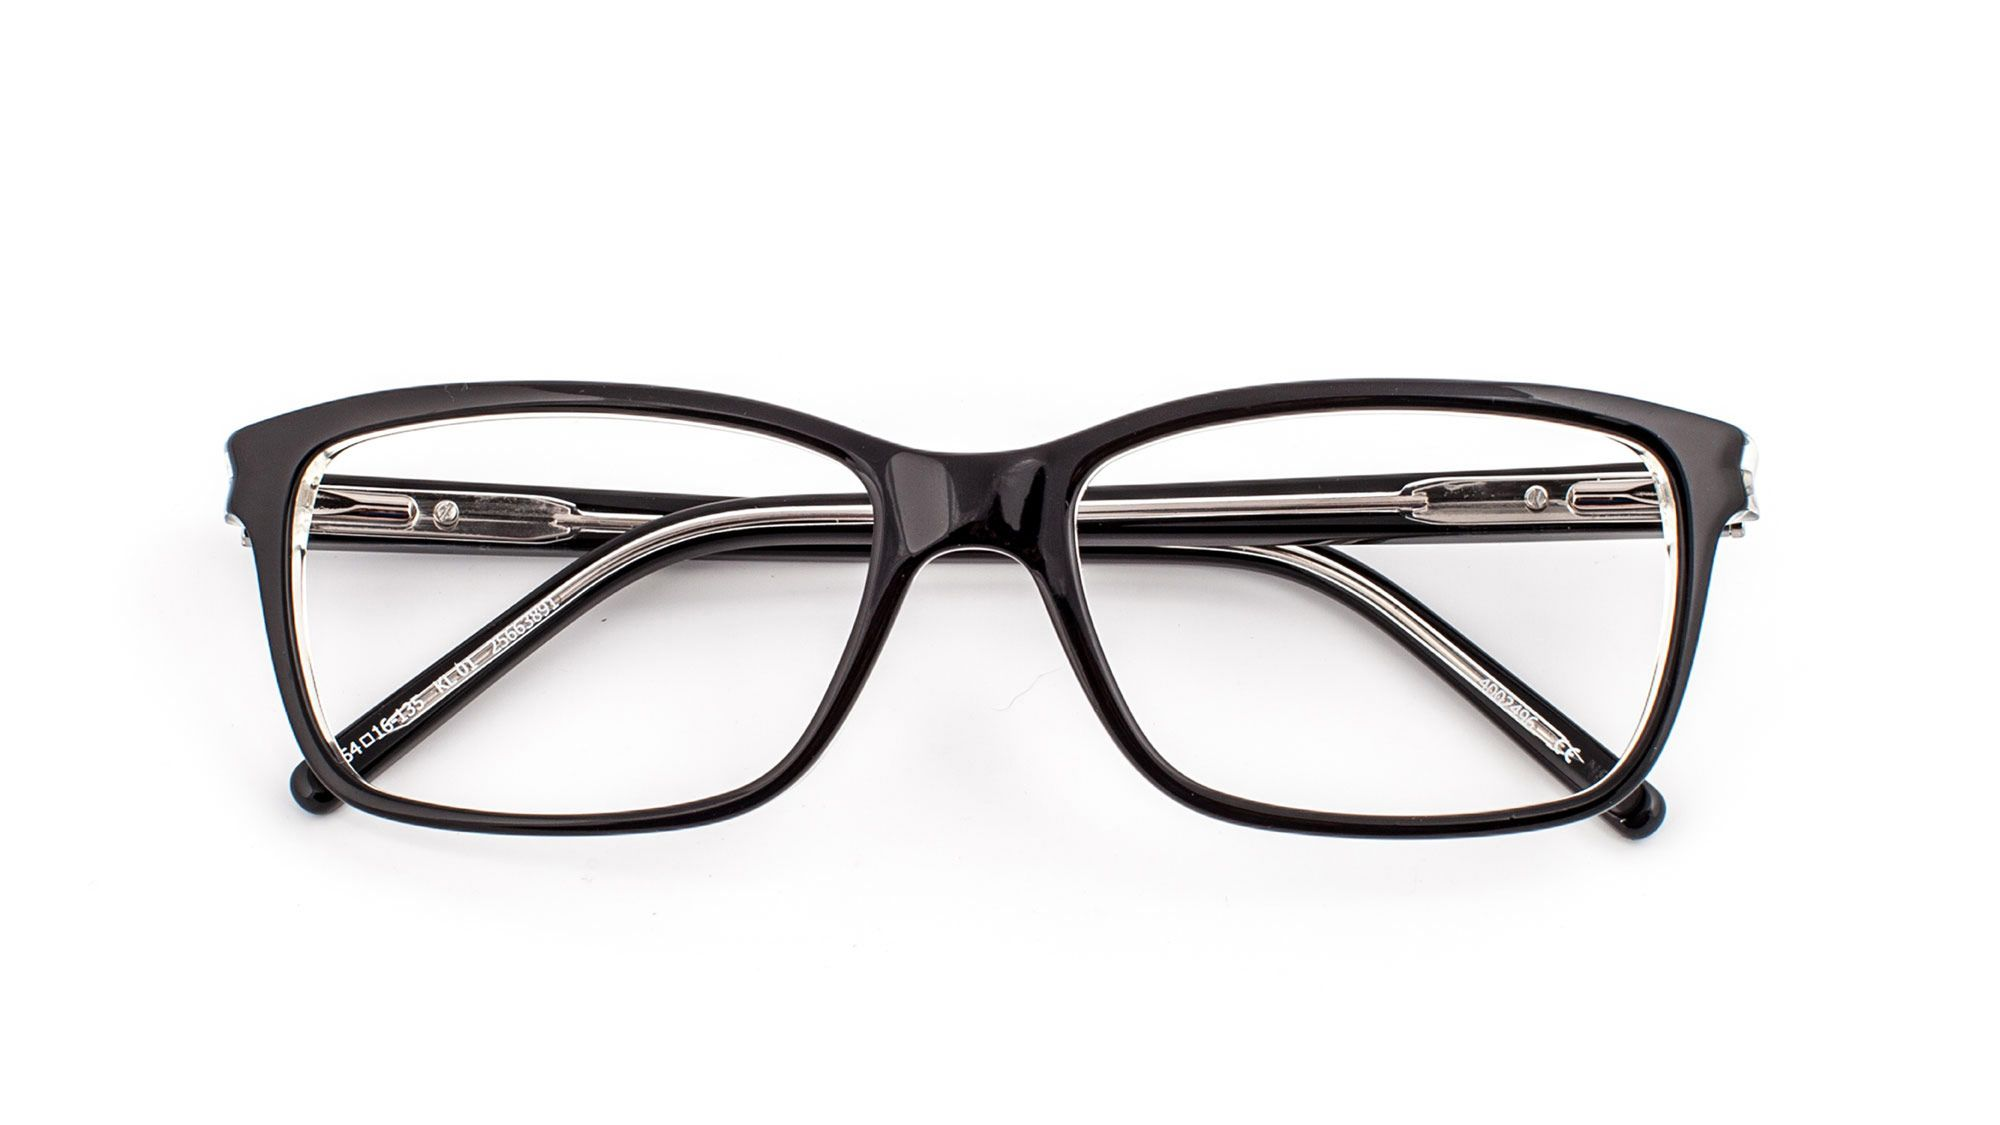 5f17a5e62eb KL 01 Glasses by Karl Lagerfeld